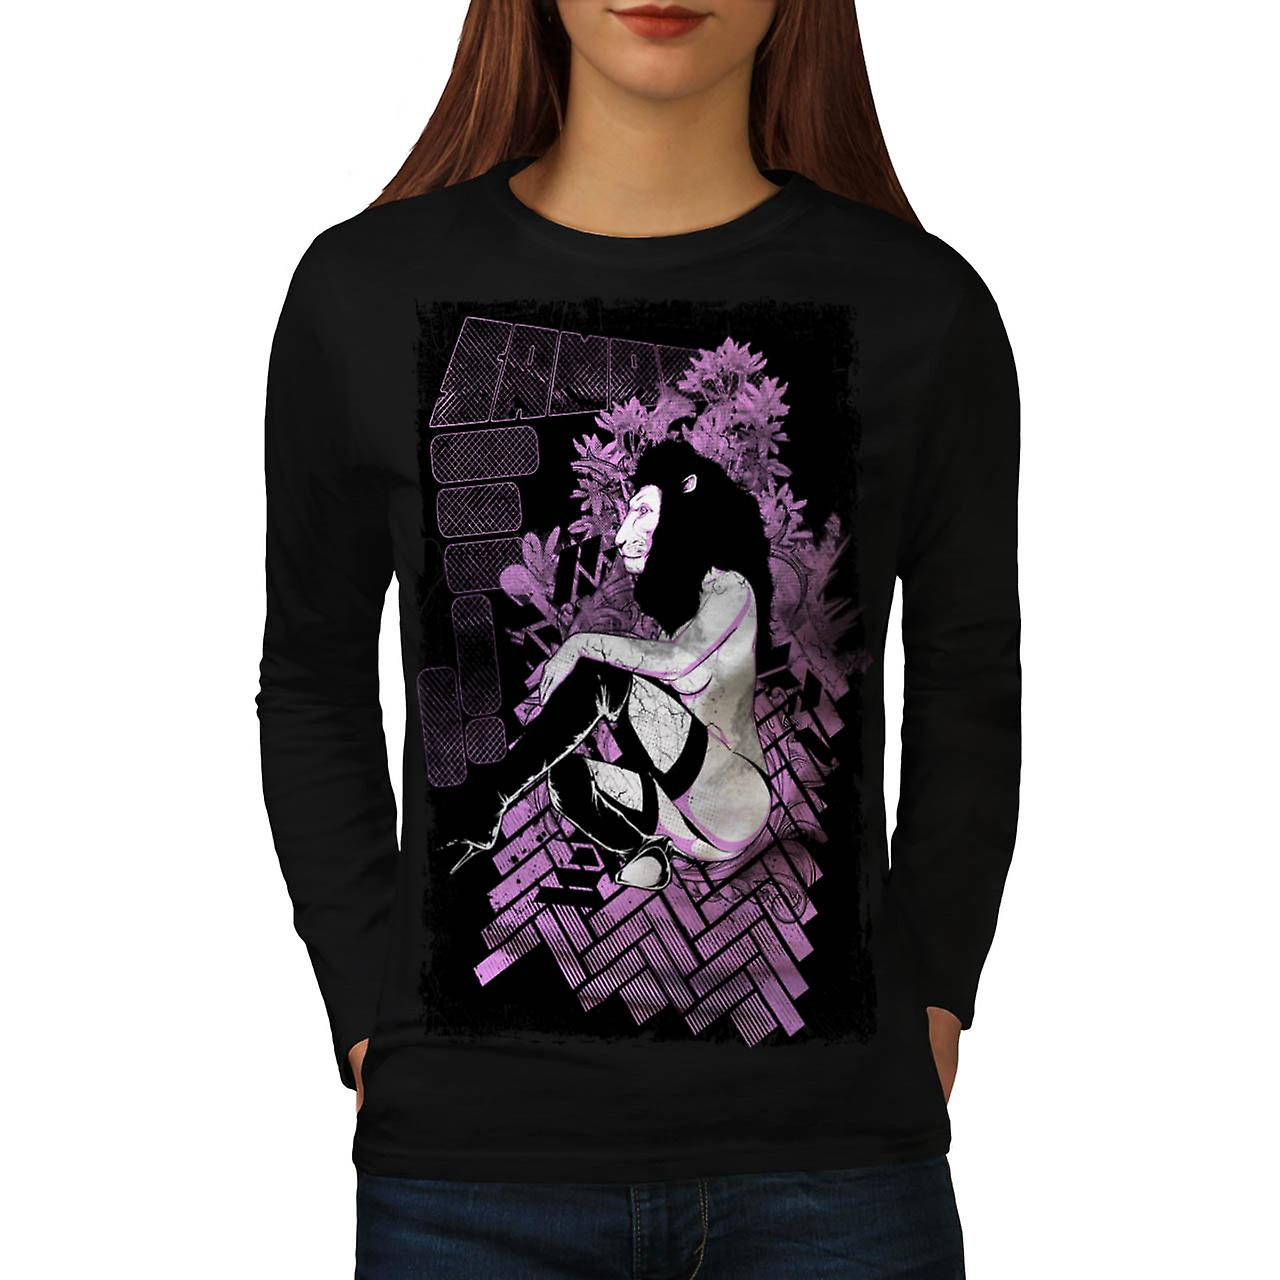 Tease Queen Lion Mask Wild Girl Women Black Long Sleeve T-shirt | Wellcoda